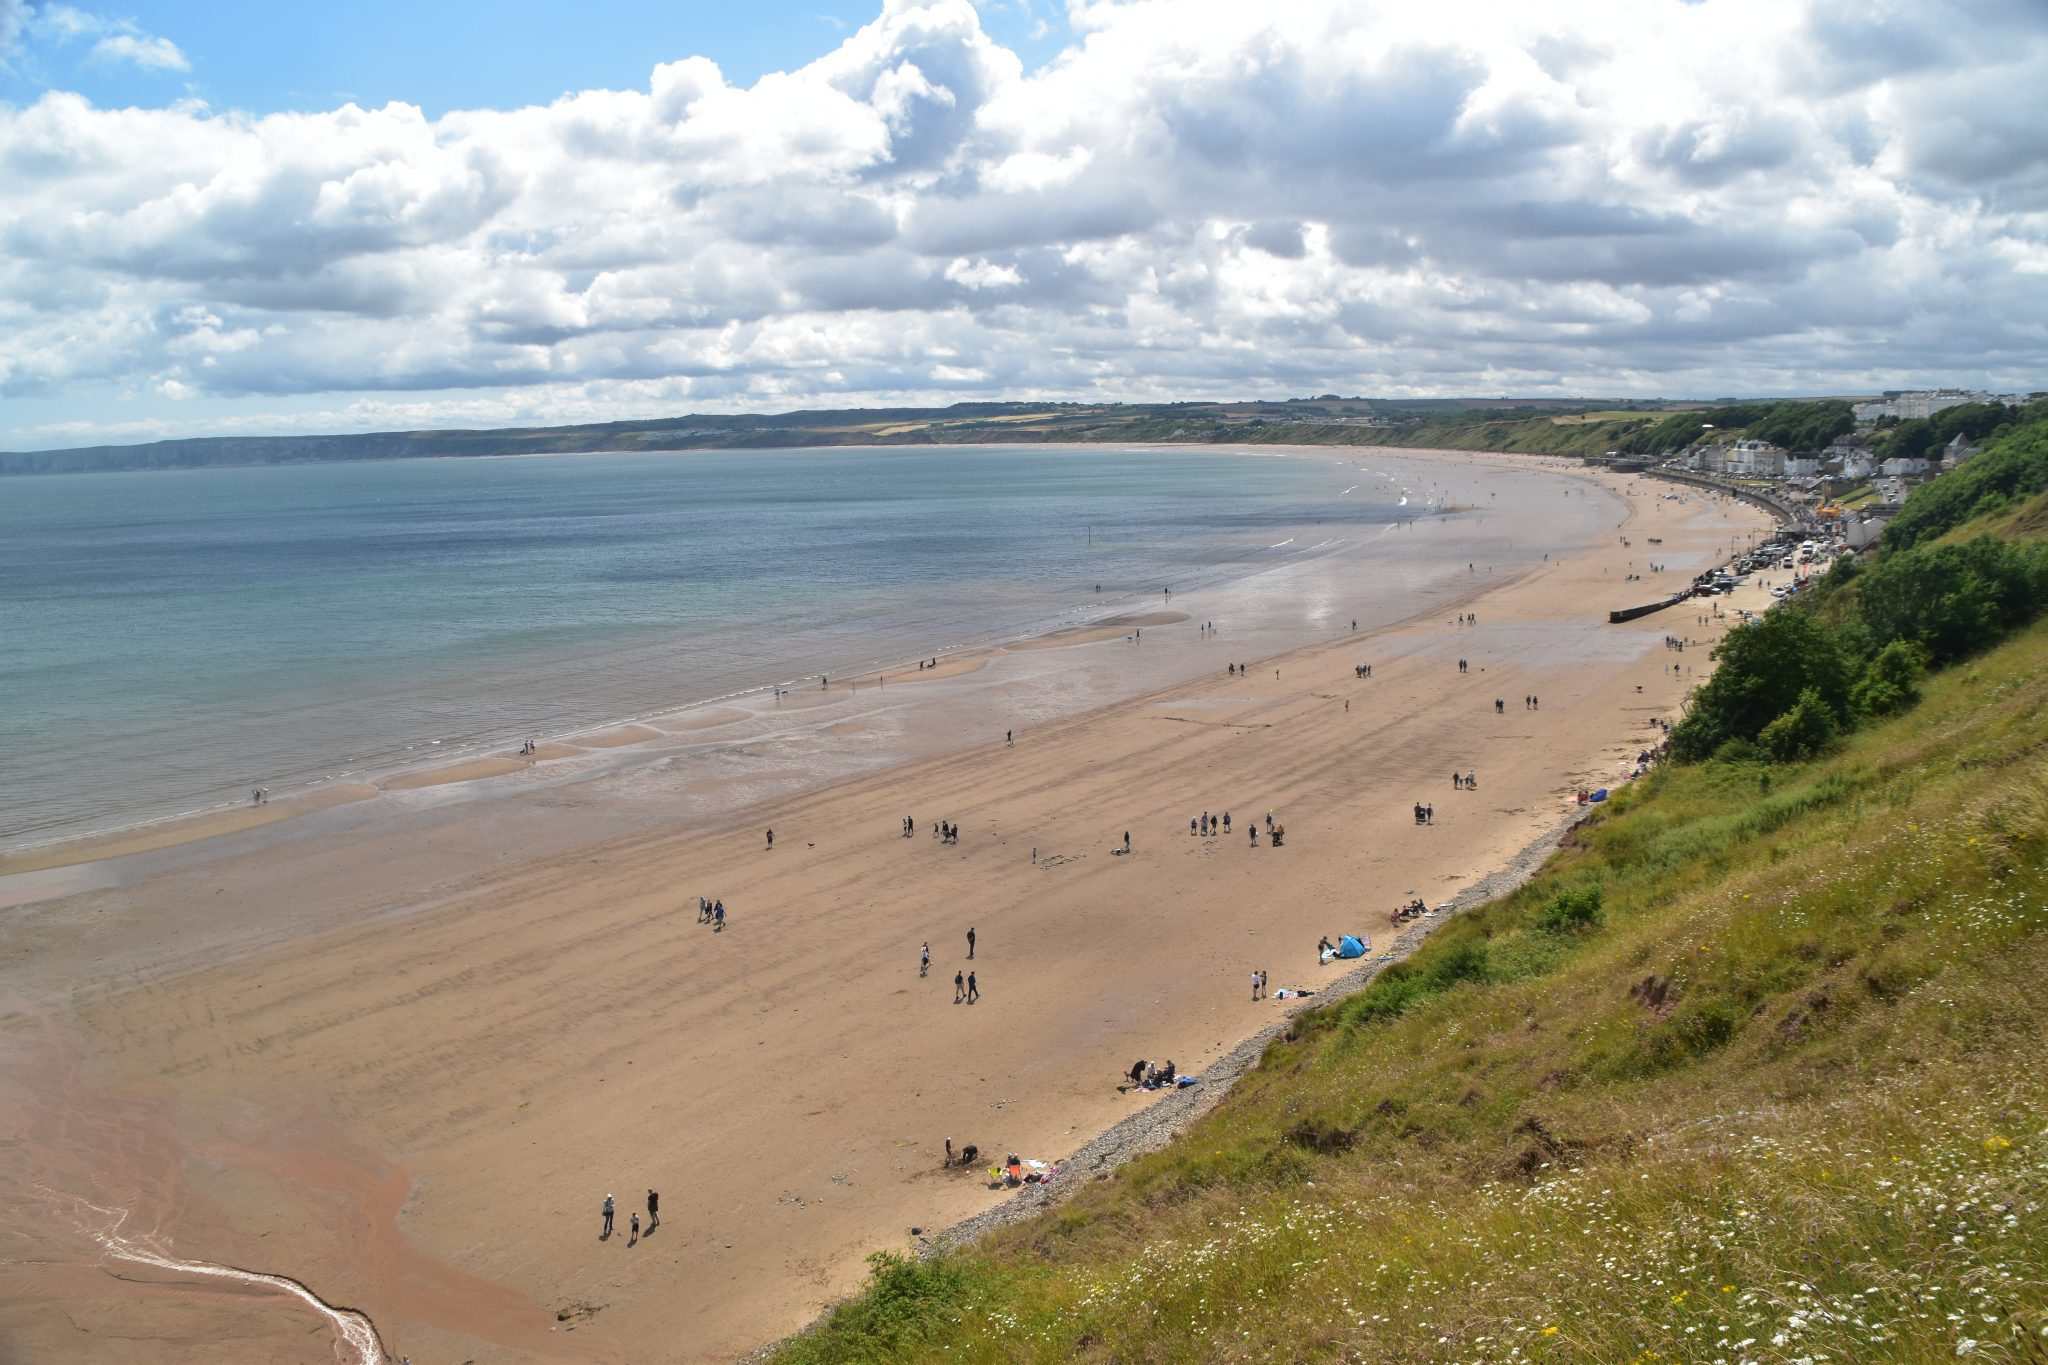 Yorkshire Wolds Way, view from Filey Brigg at start (or end) of the path